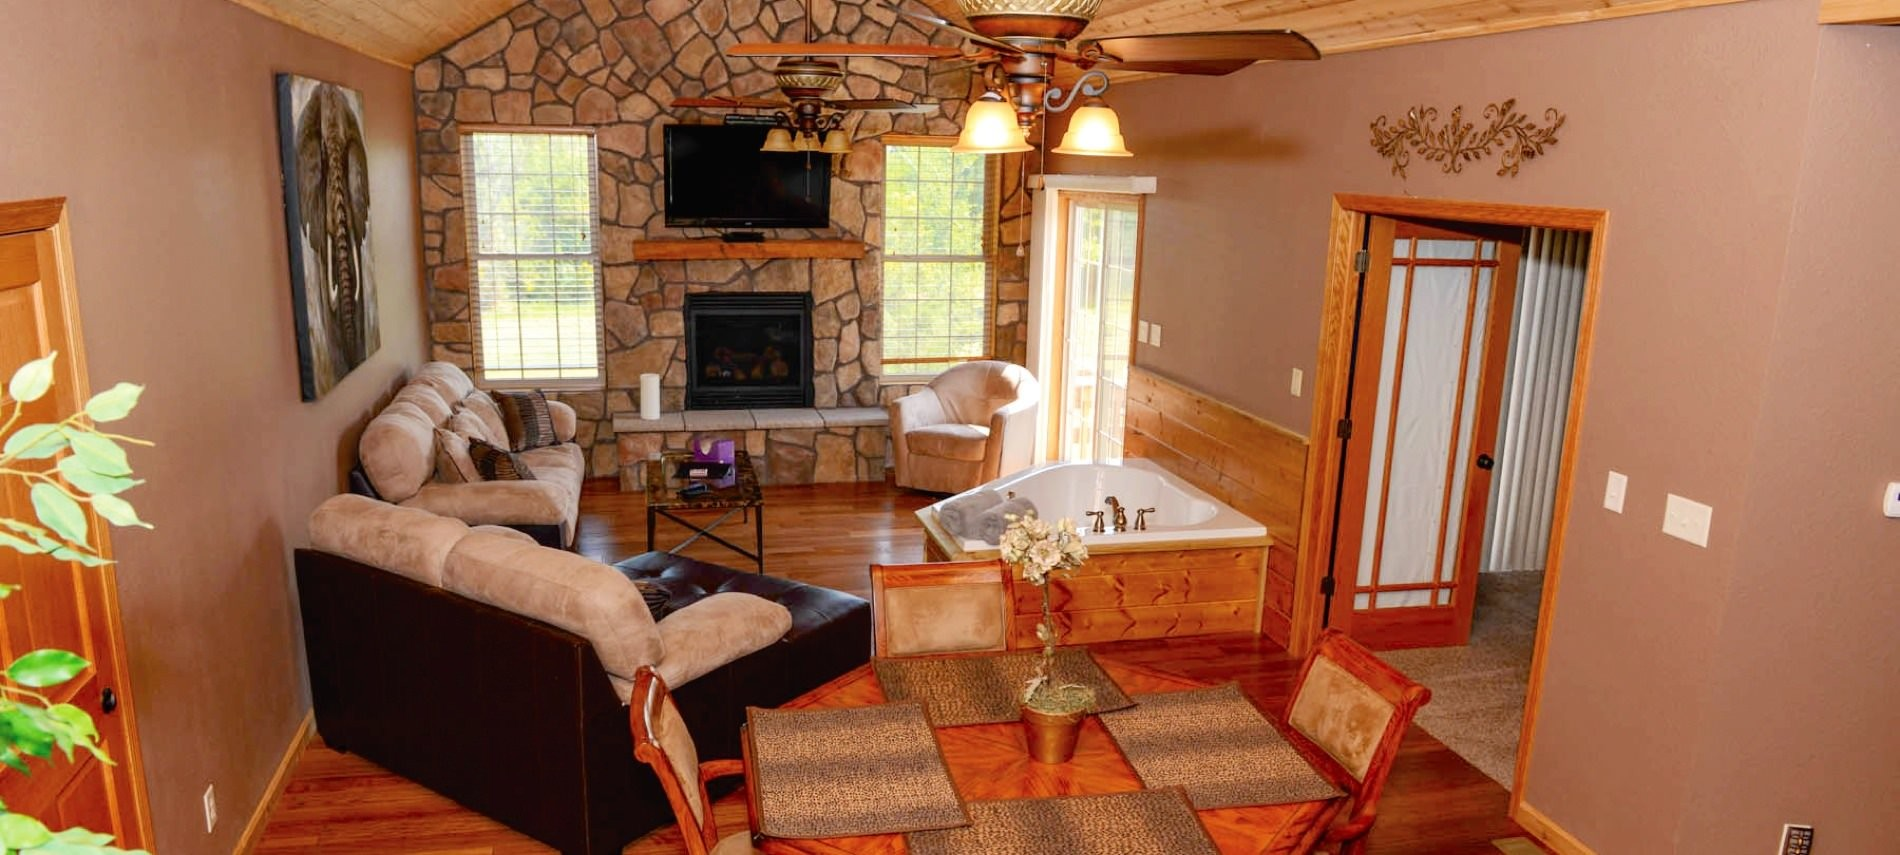 Large room with stone fireplace, flatscreen television, ceiling fan with lights, couch, triangle tub, Wood table & chairs.